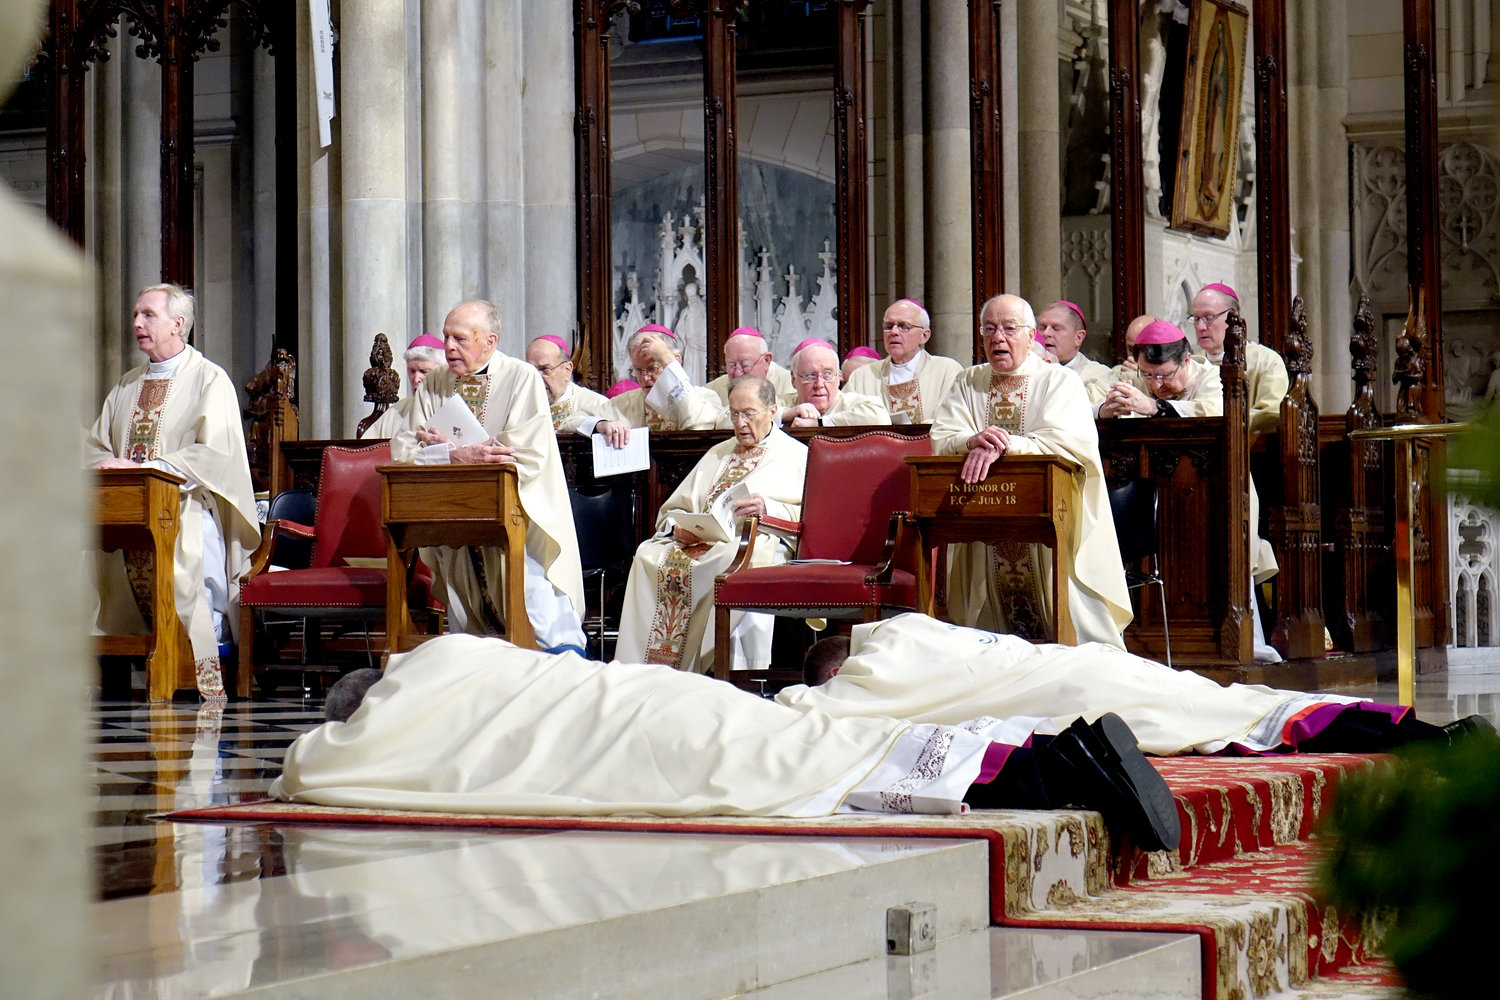 Auxiliary Bishop Gerardo J. Colacicco and Edmund J. Whalen lay prostrate in the sanctuary during the Rite of Ordination. Their assisting priests, from left, Father Robert Dillon, Msgr. Thomas Bergin, Msgr. John Ruvo and Father Richard LaMorte, are seated in front of concelebrating prelates.